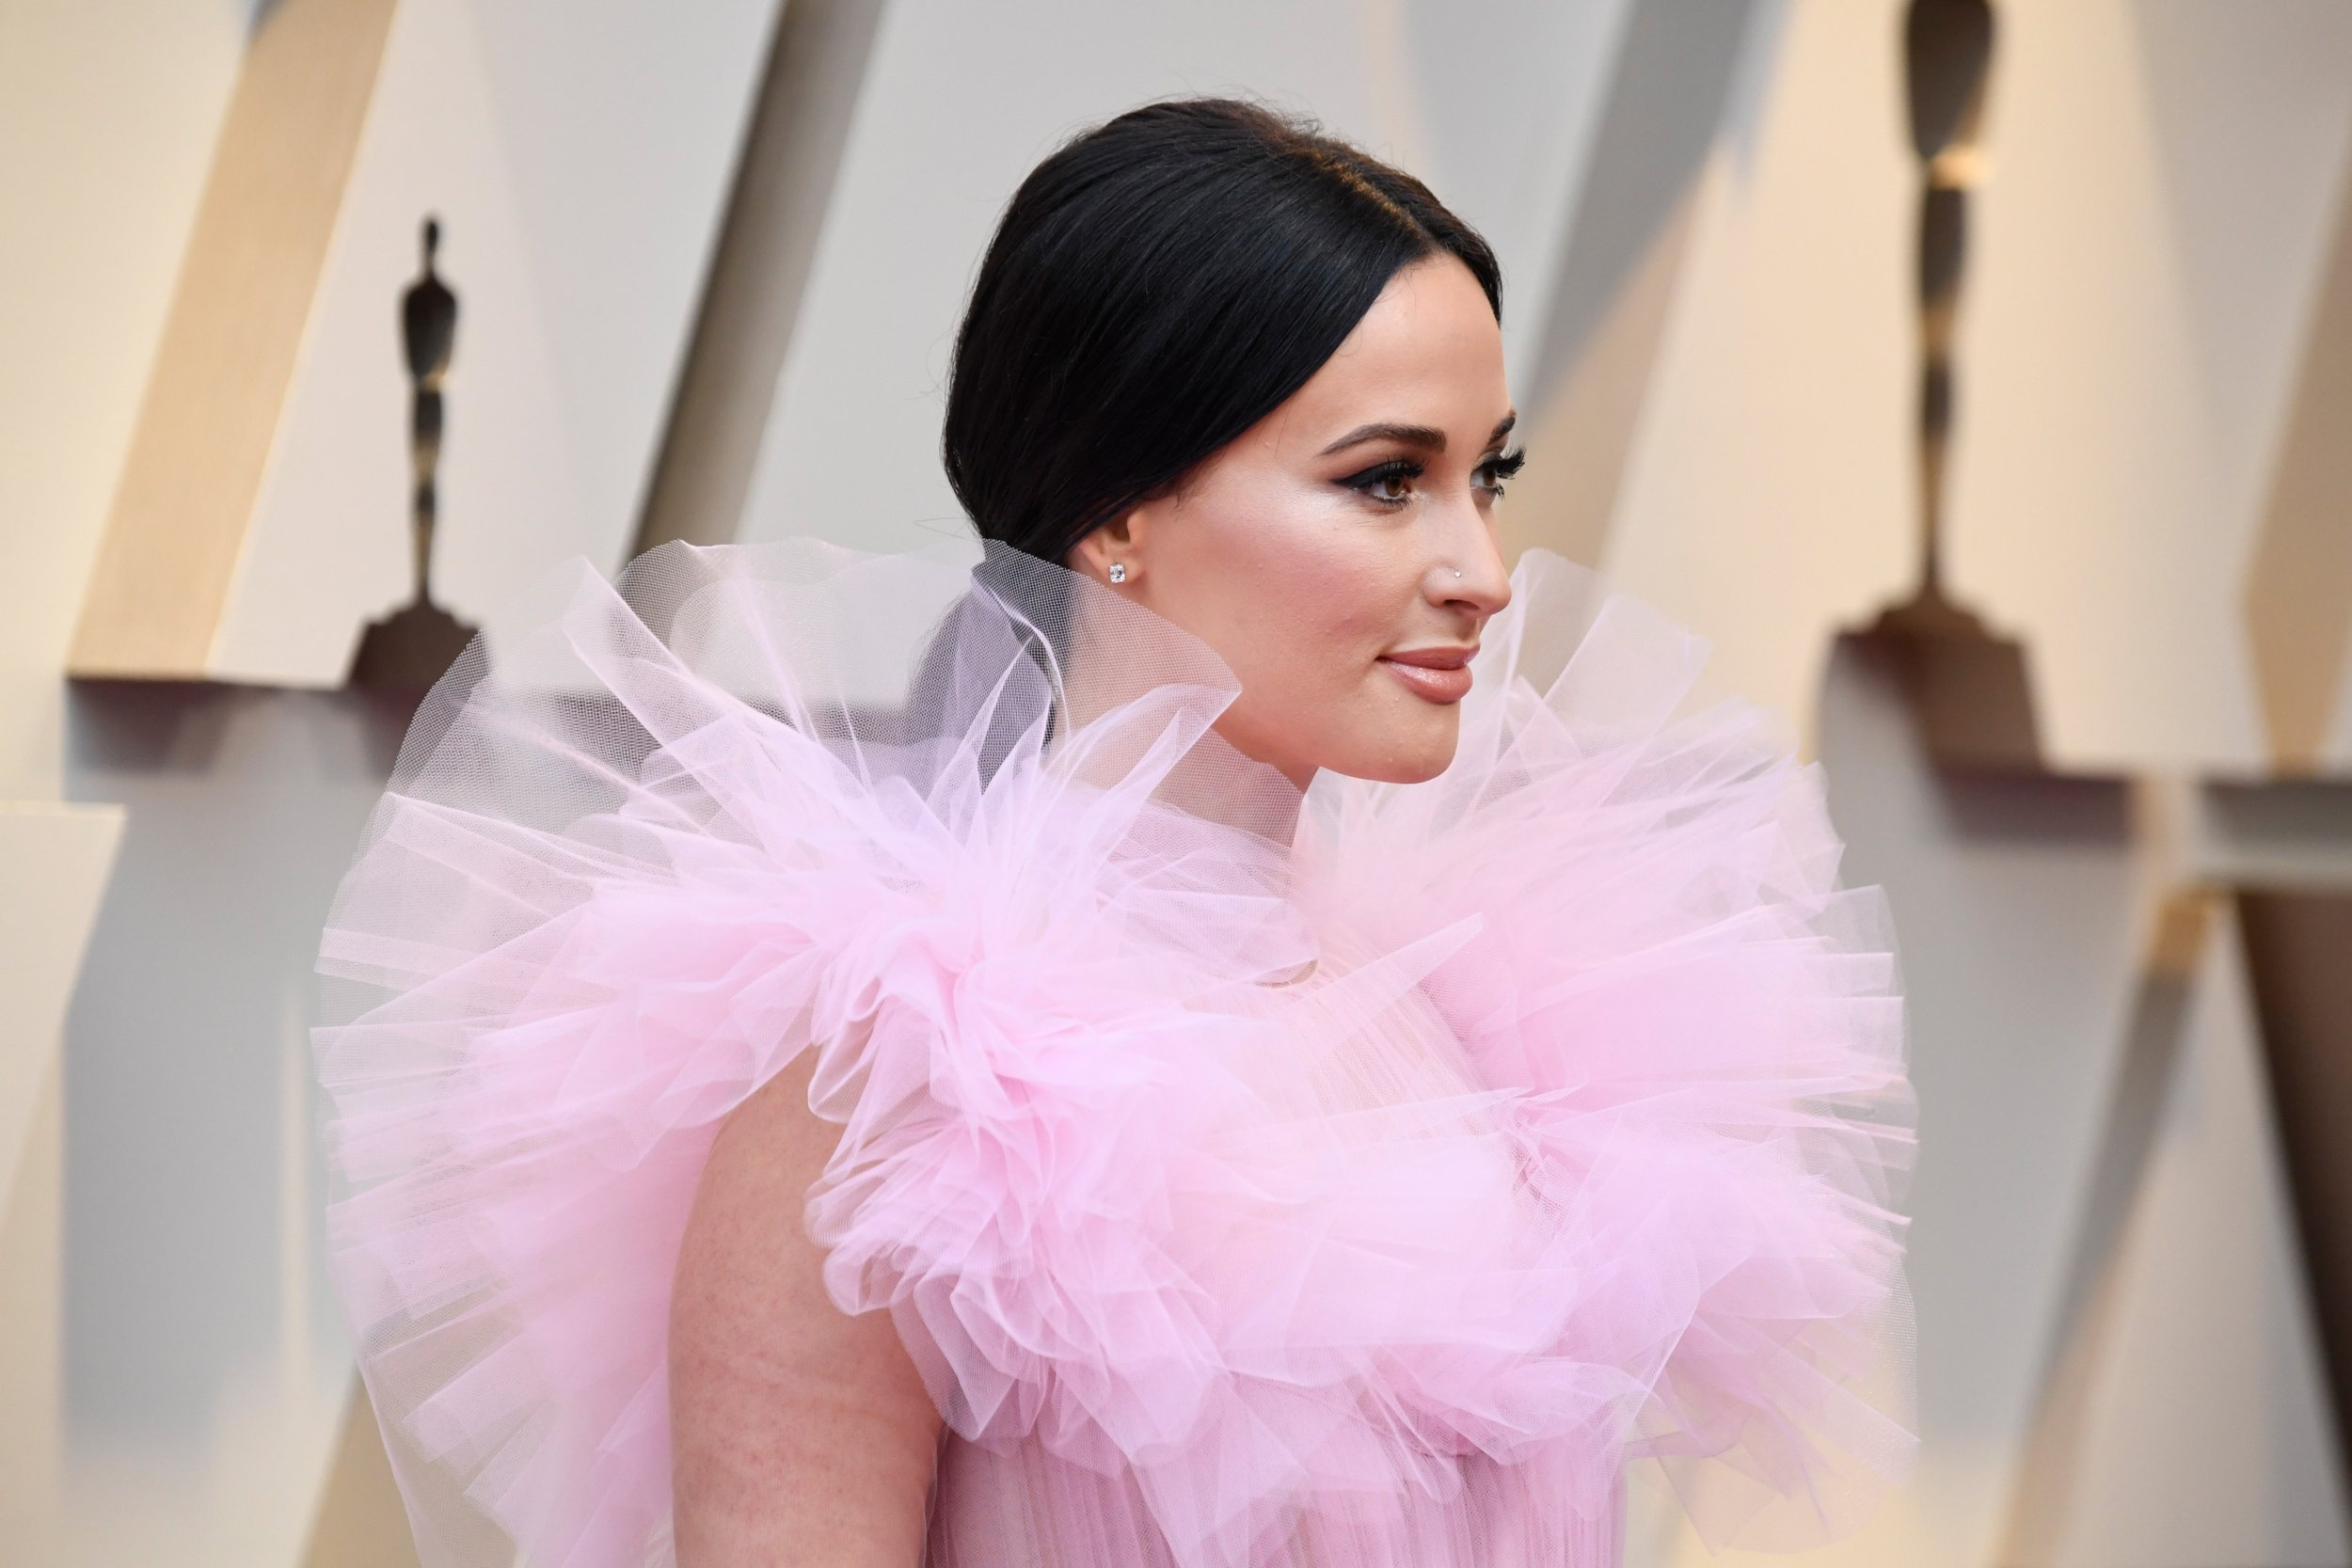 Kacey Musgraves Rise to Fame